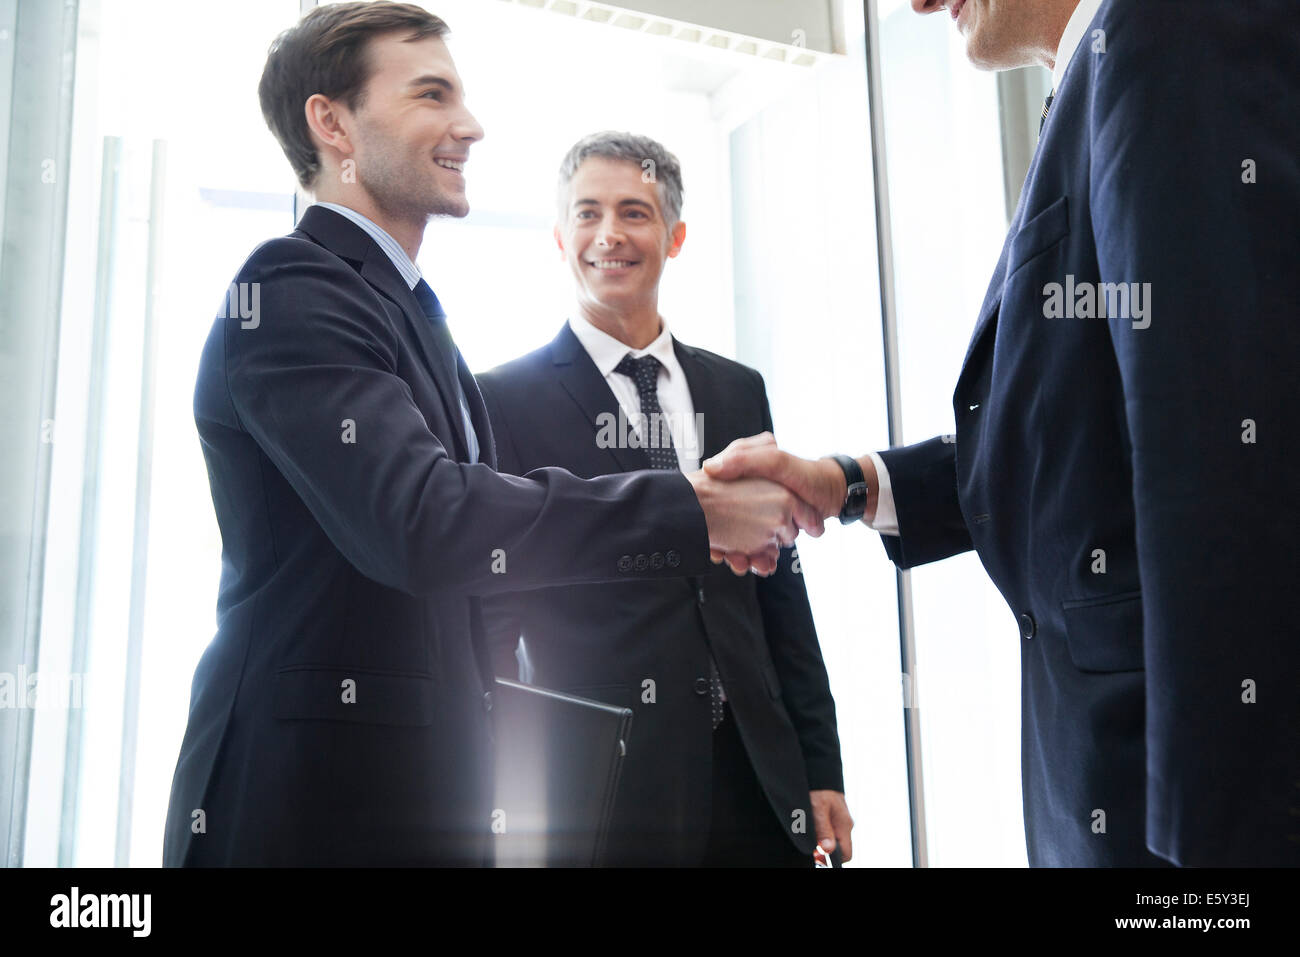 Young businessman shaking hands with senior associate - Stock Image